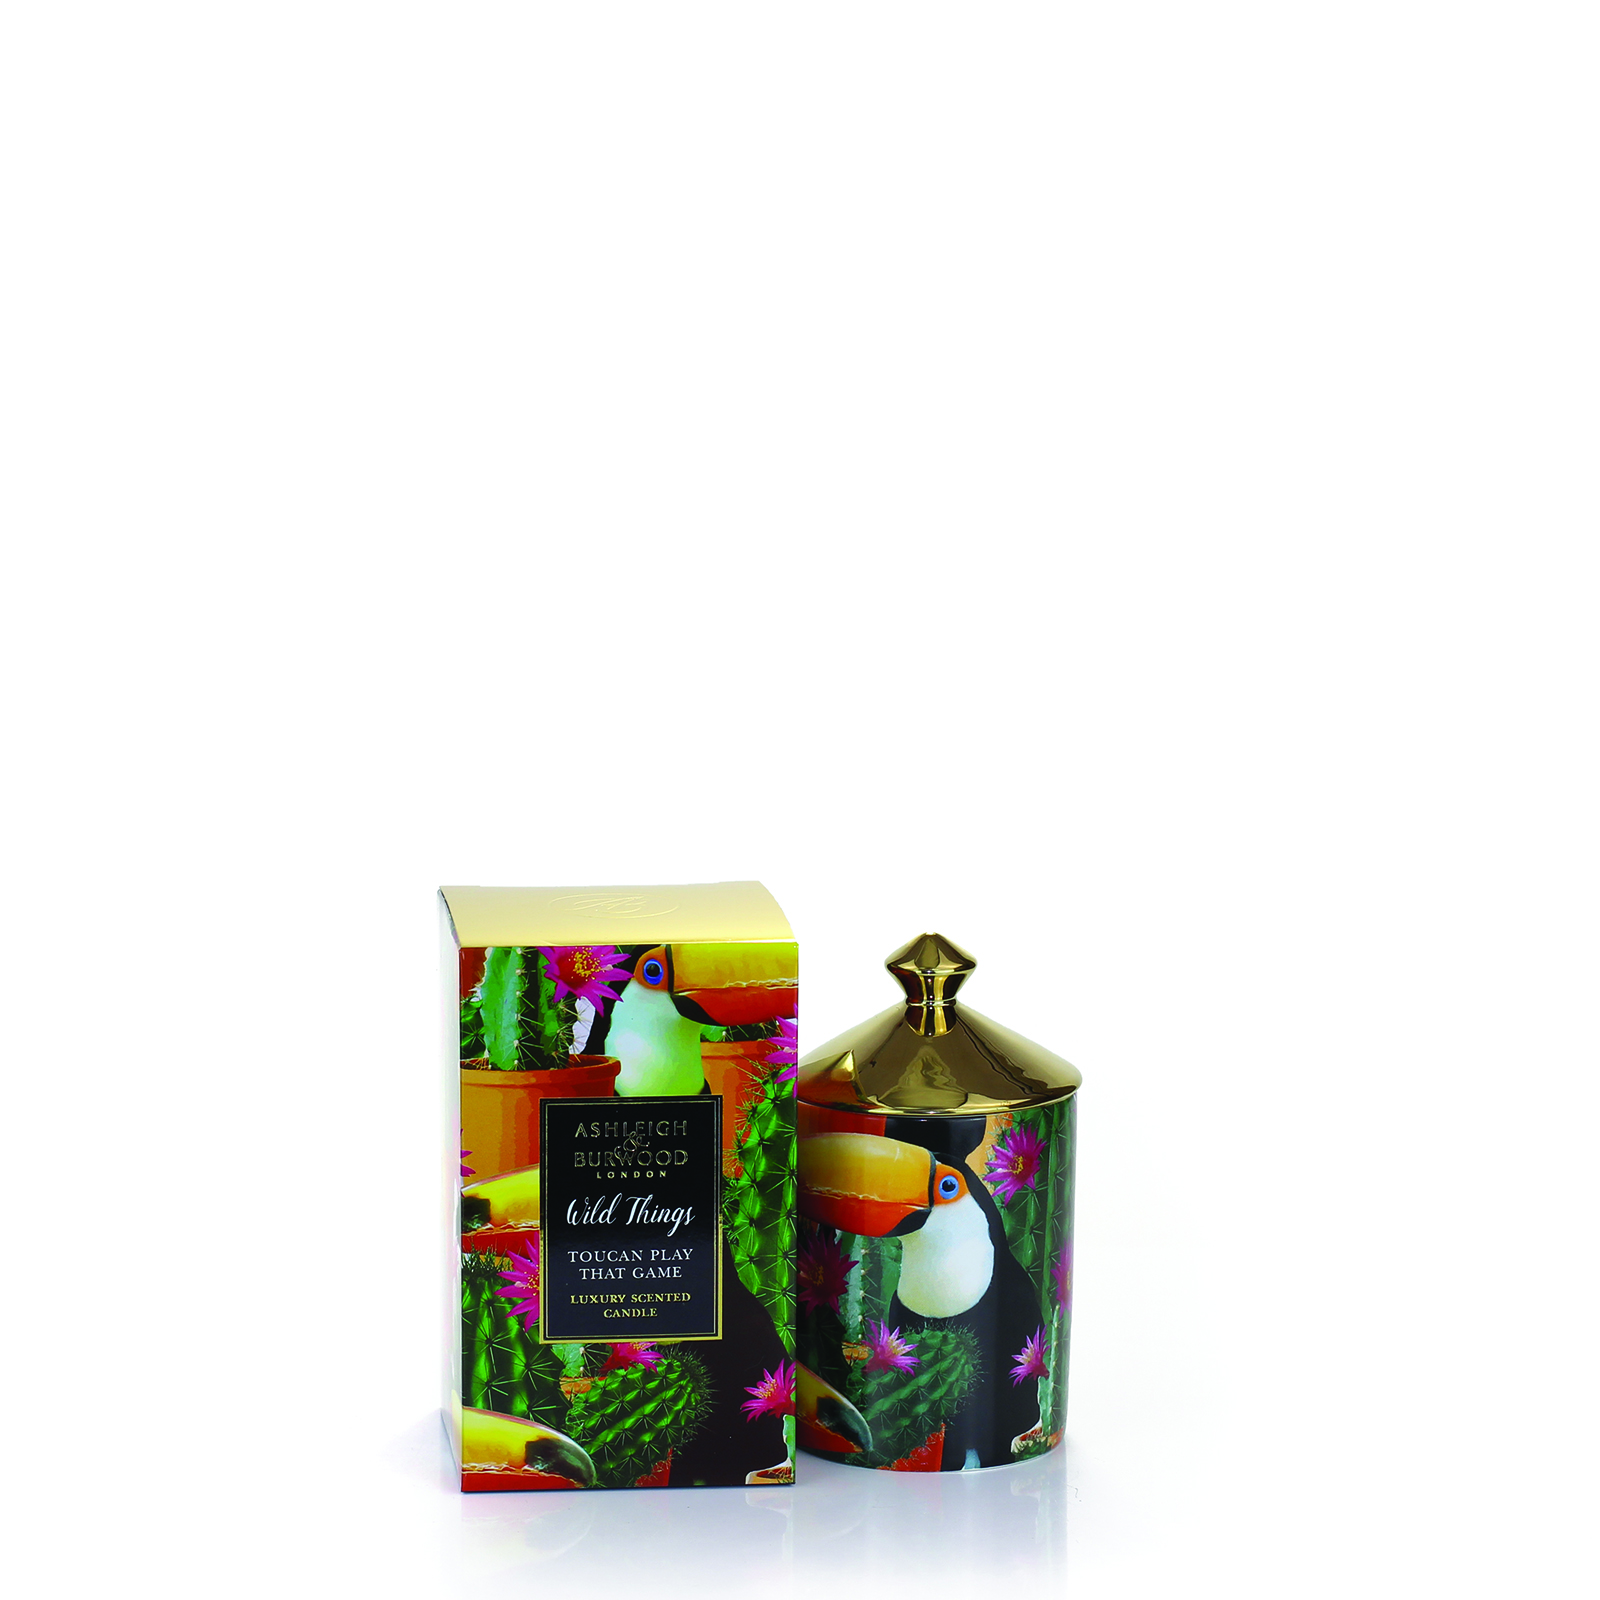 Wild Things Toucan Play that Game Candle